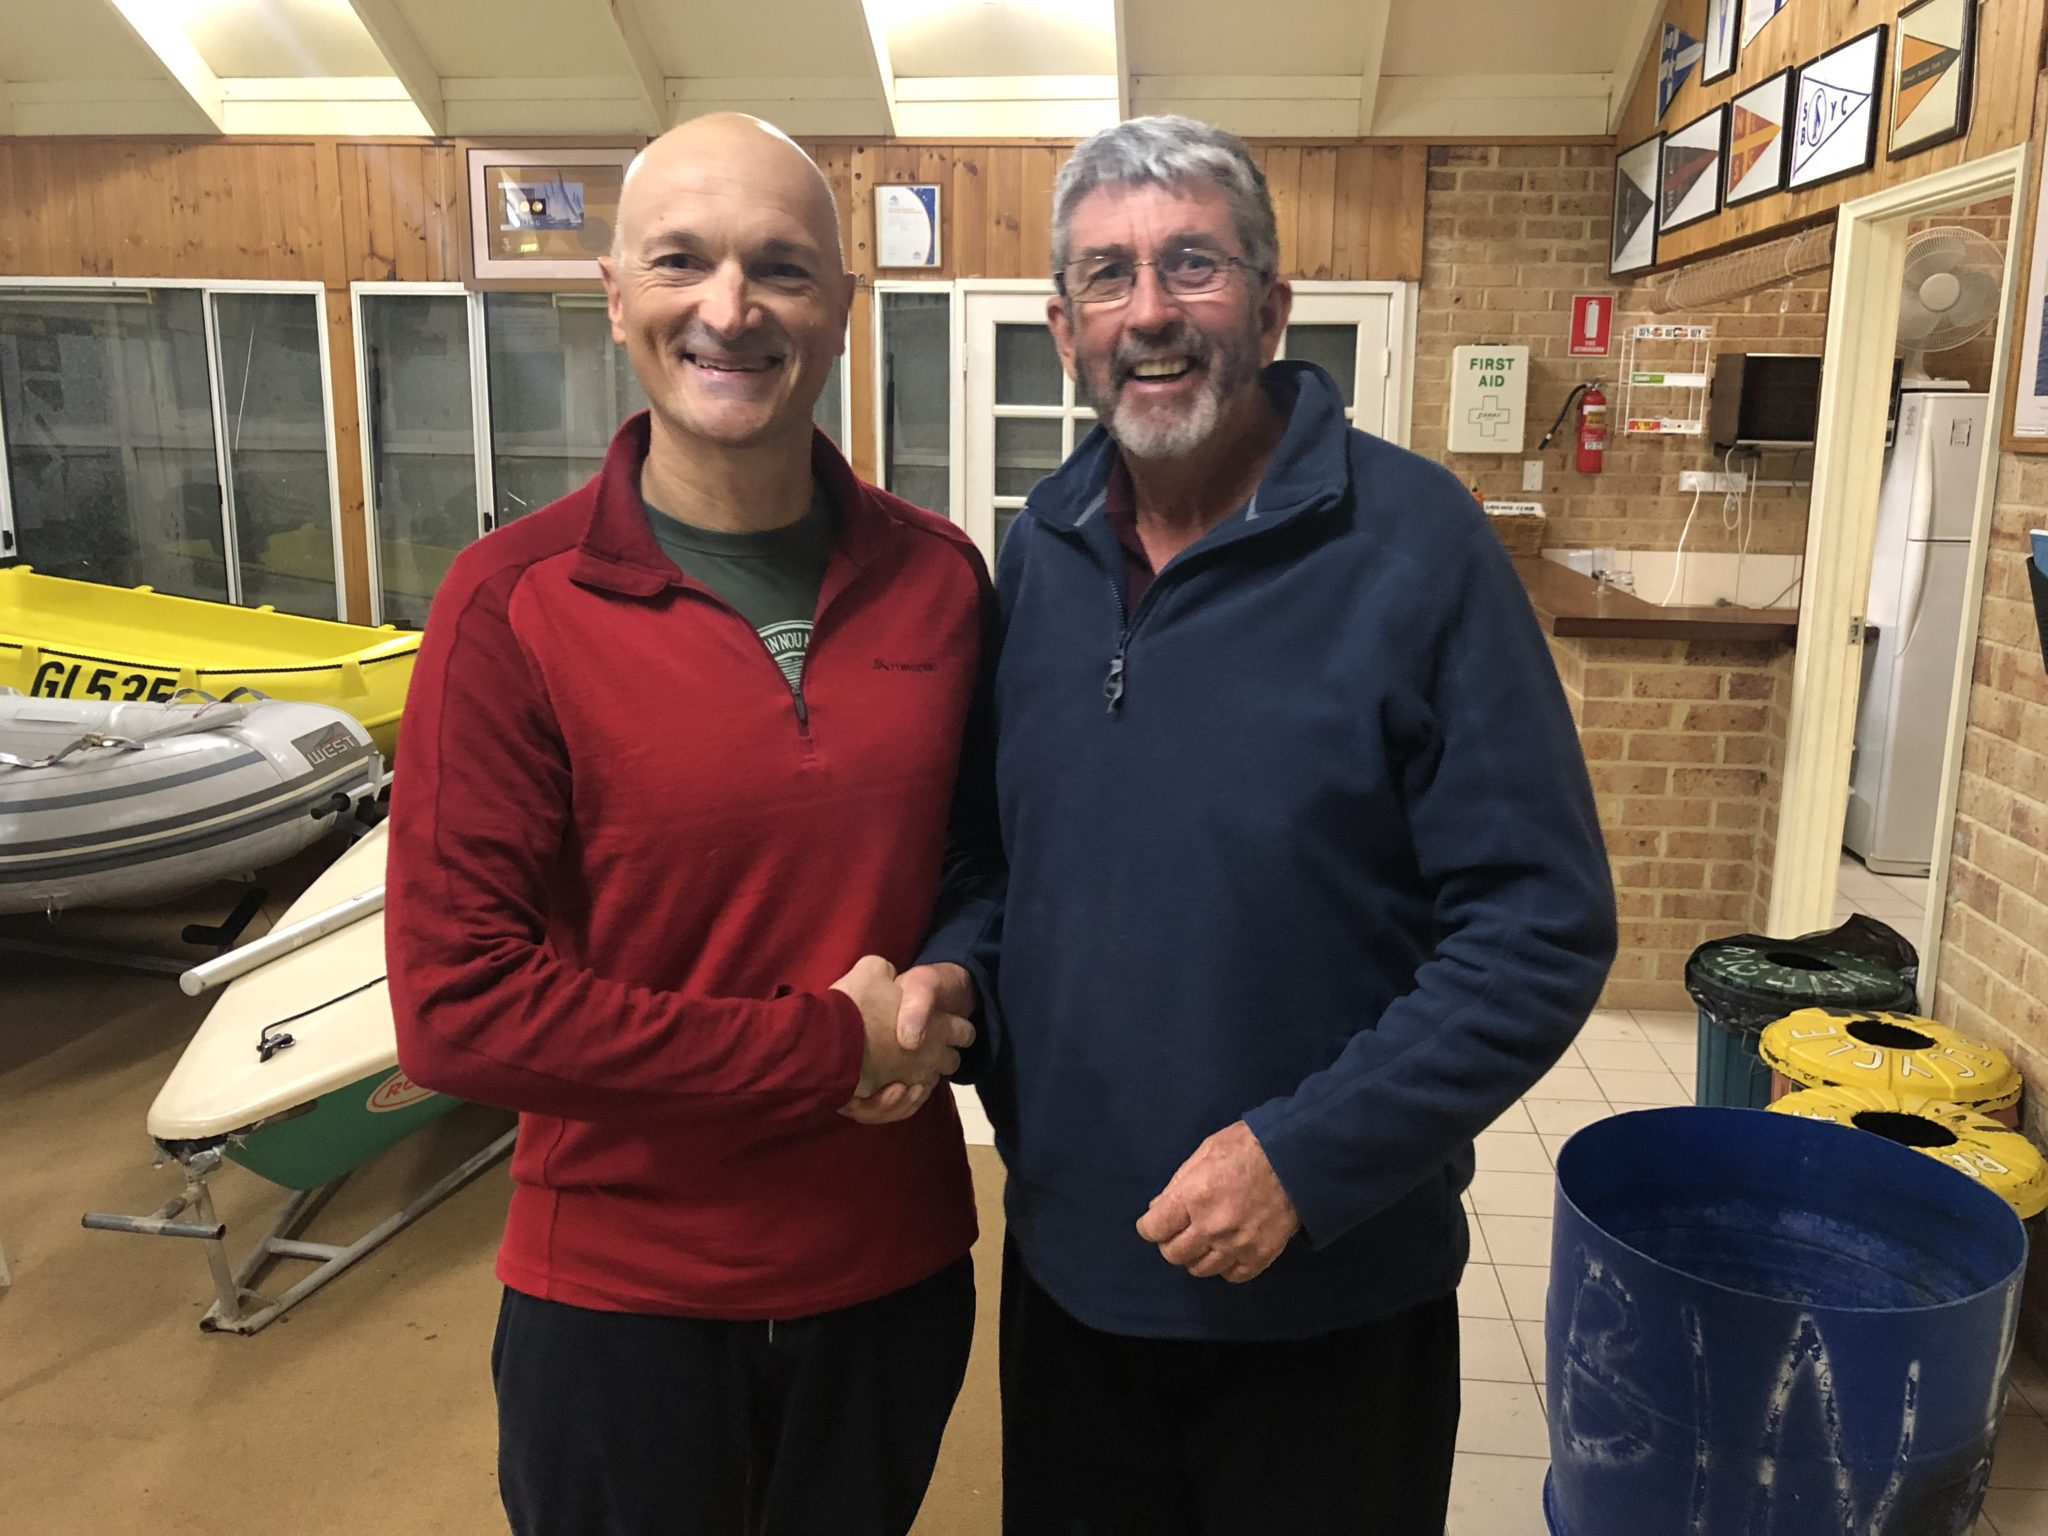 Tuesday 11th June 2019 : Tonight's photo shows club member David Griffiths presenting Carlo Cottino with the winners movie voucher.